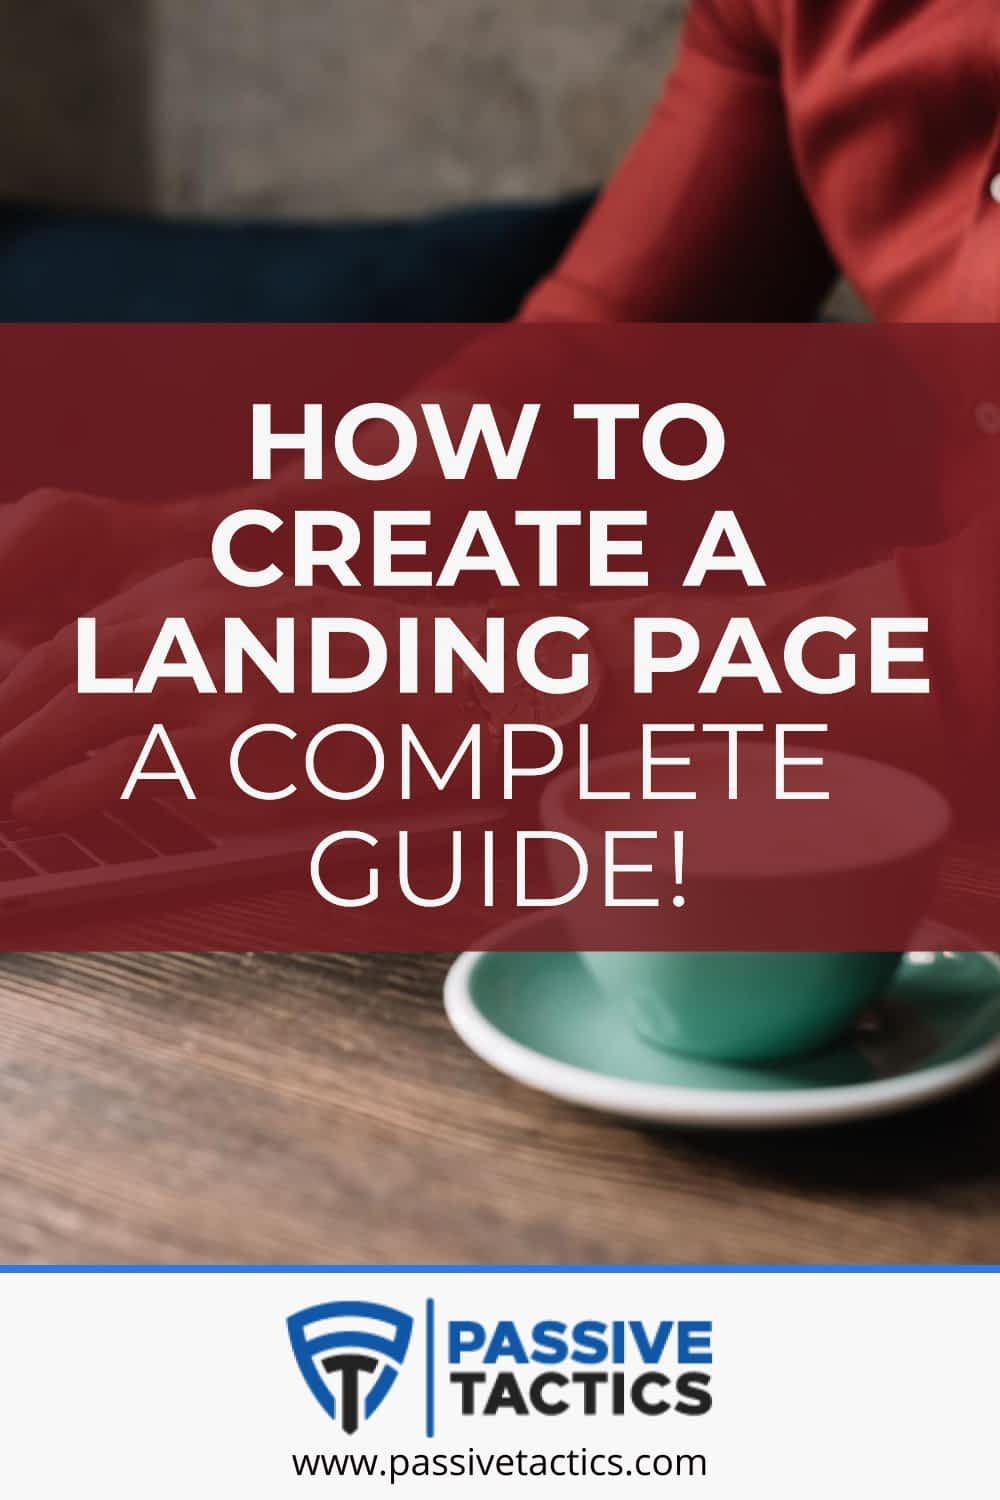 How To Create A Landing Page: A Complete Guide!